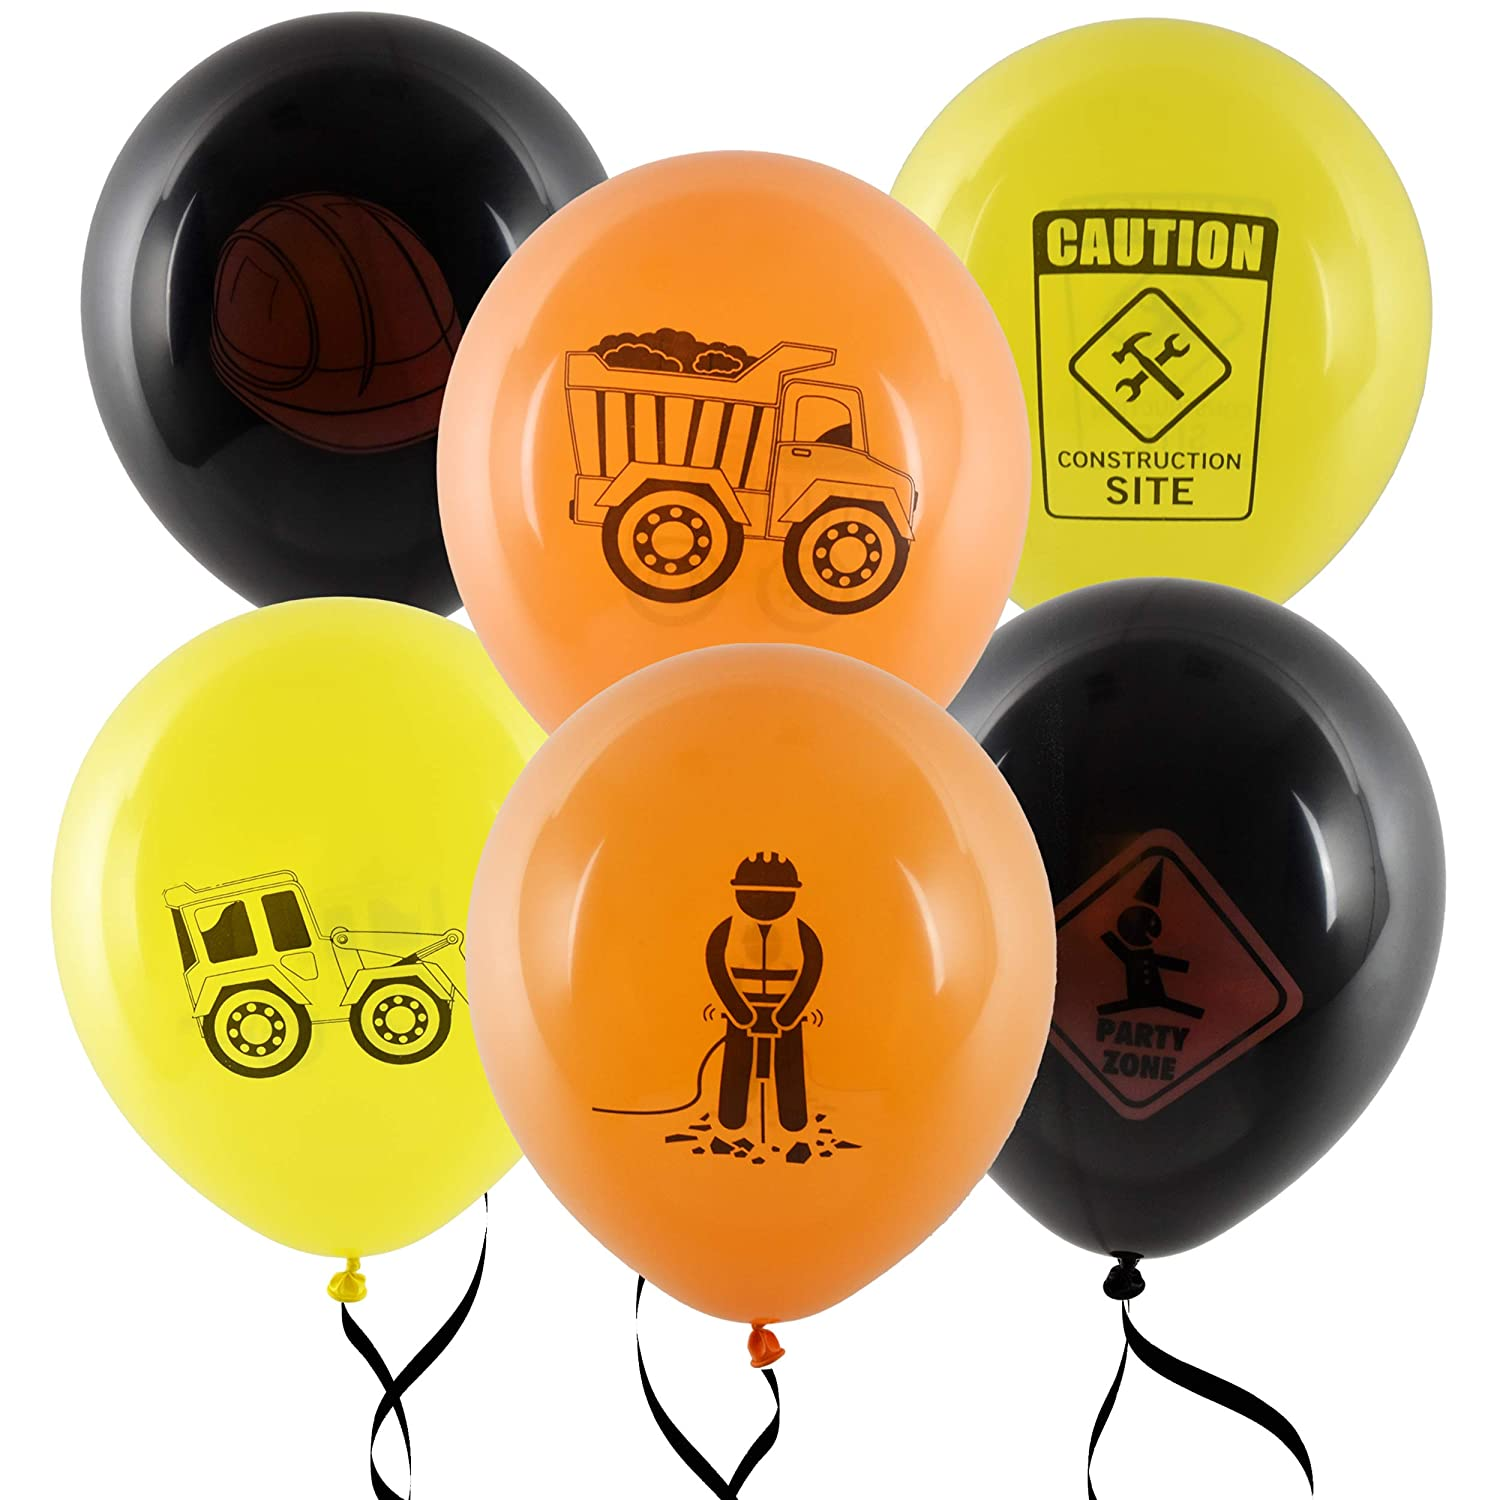 """36 Construction Balloons 12/"""" Latex Balloon Yellow and Black Construction Zone Builder Balloon For Kids Birthday Party Favor Supplies Decorations by Gift Boutique"""